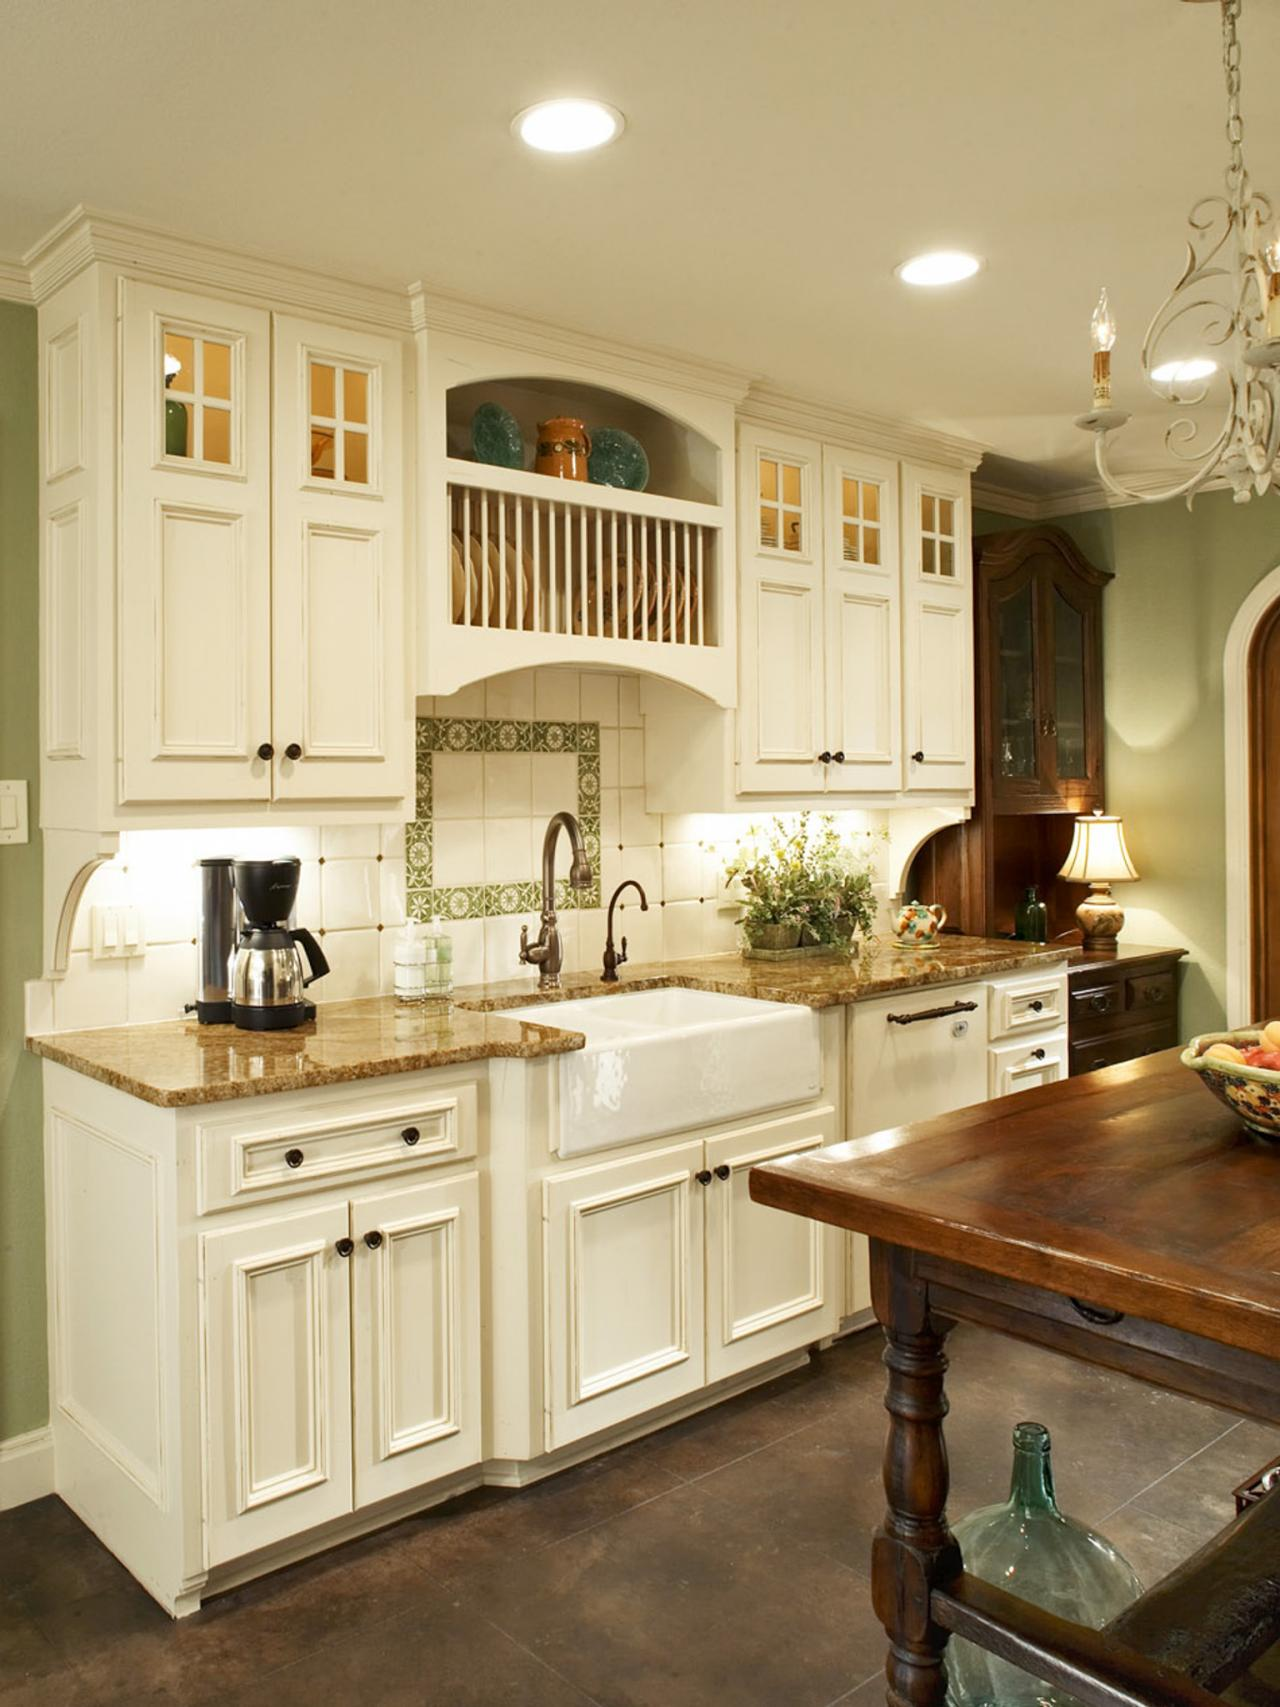 French country kitchen photos hgtv for French country kitchen designs photos